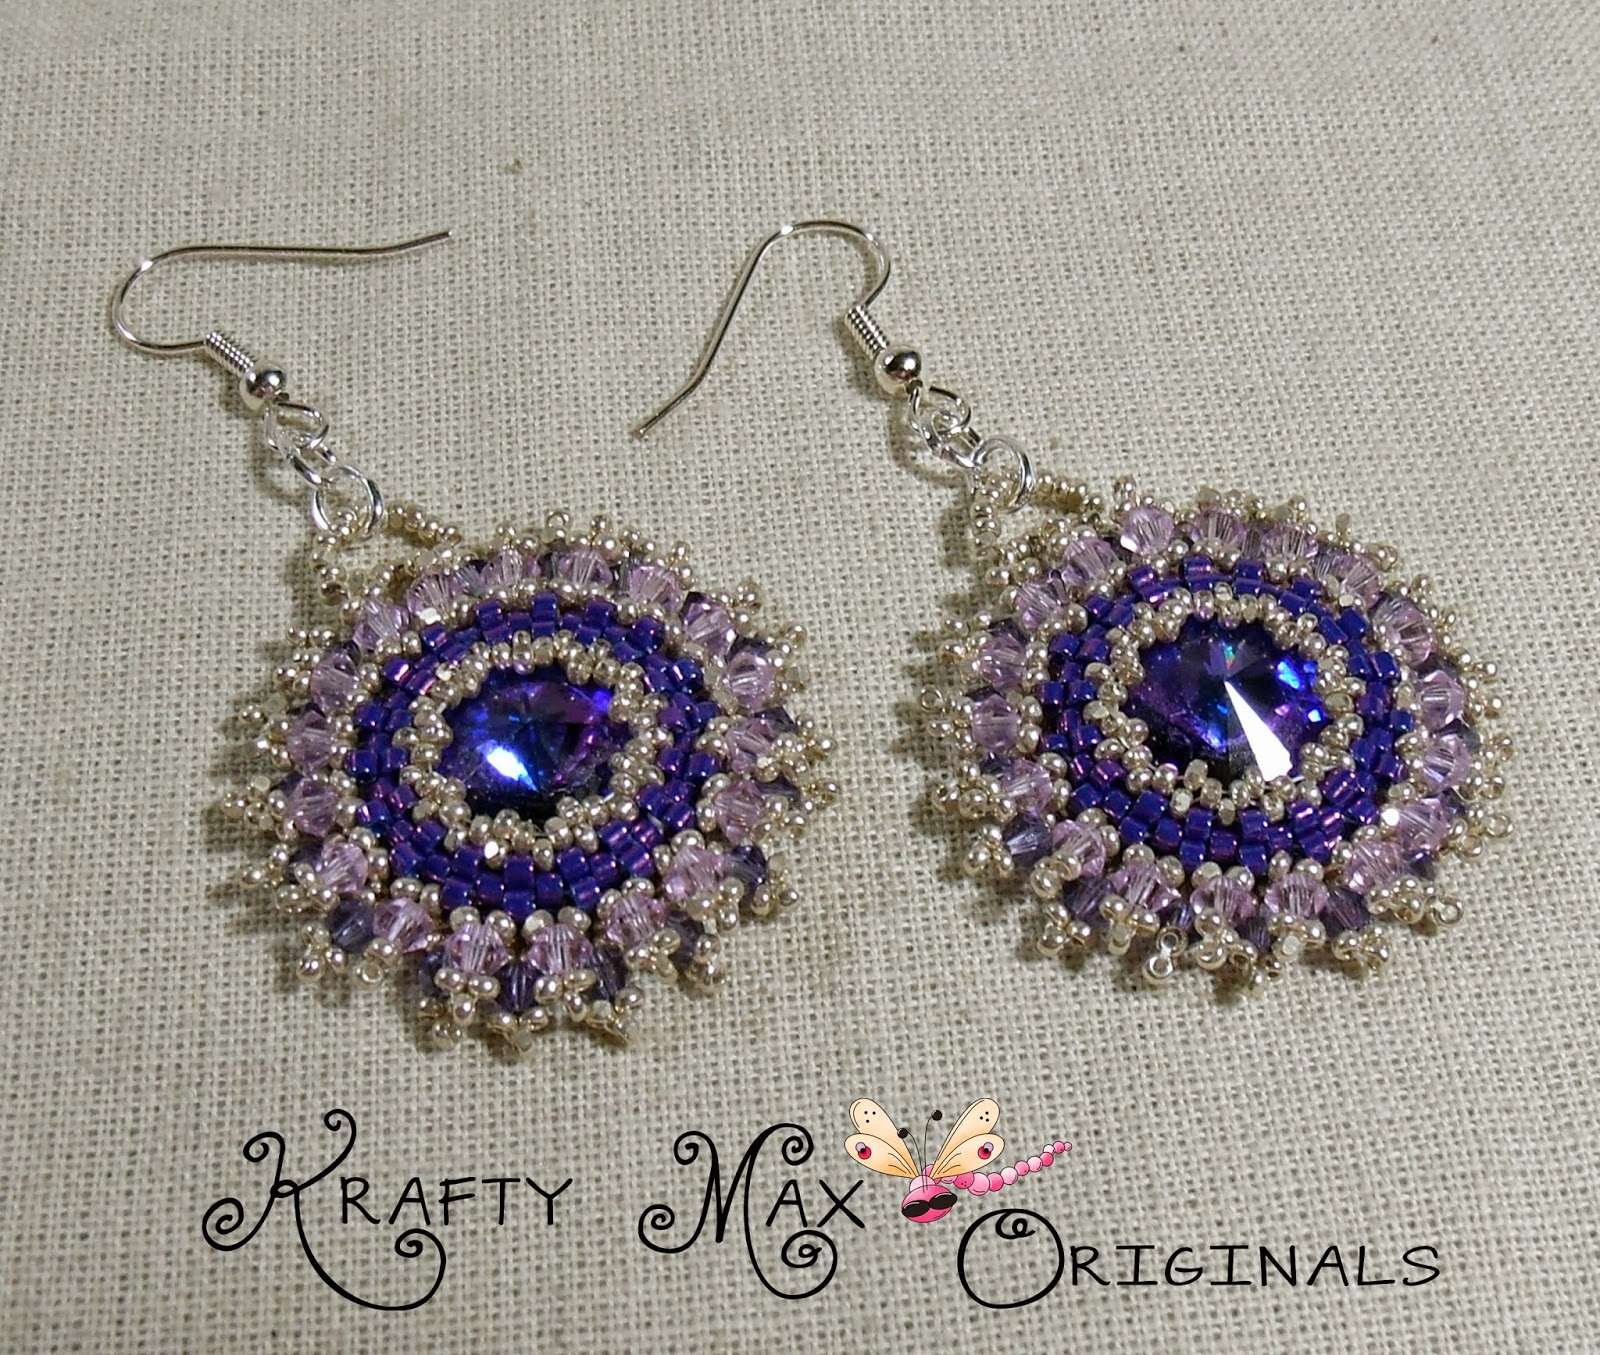 http://www.lajuliet.com/index.php/2013-01-04-15-21-51/ad/beadwork,86/exclusive-swarovski-crystal-purple-delight-handmade-beadwoven-earrings-a-krafty-max-original-design,396